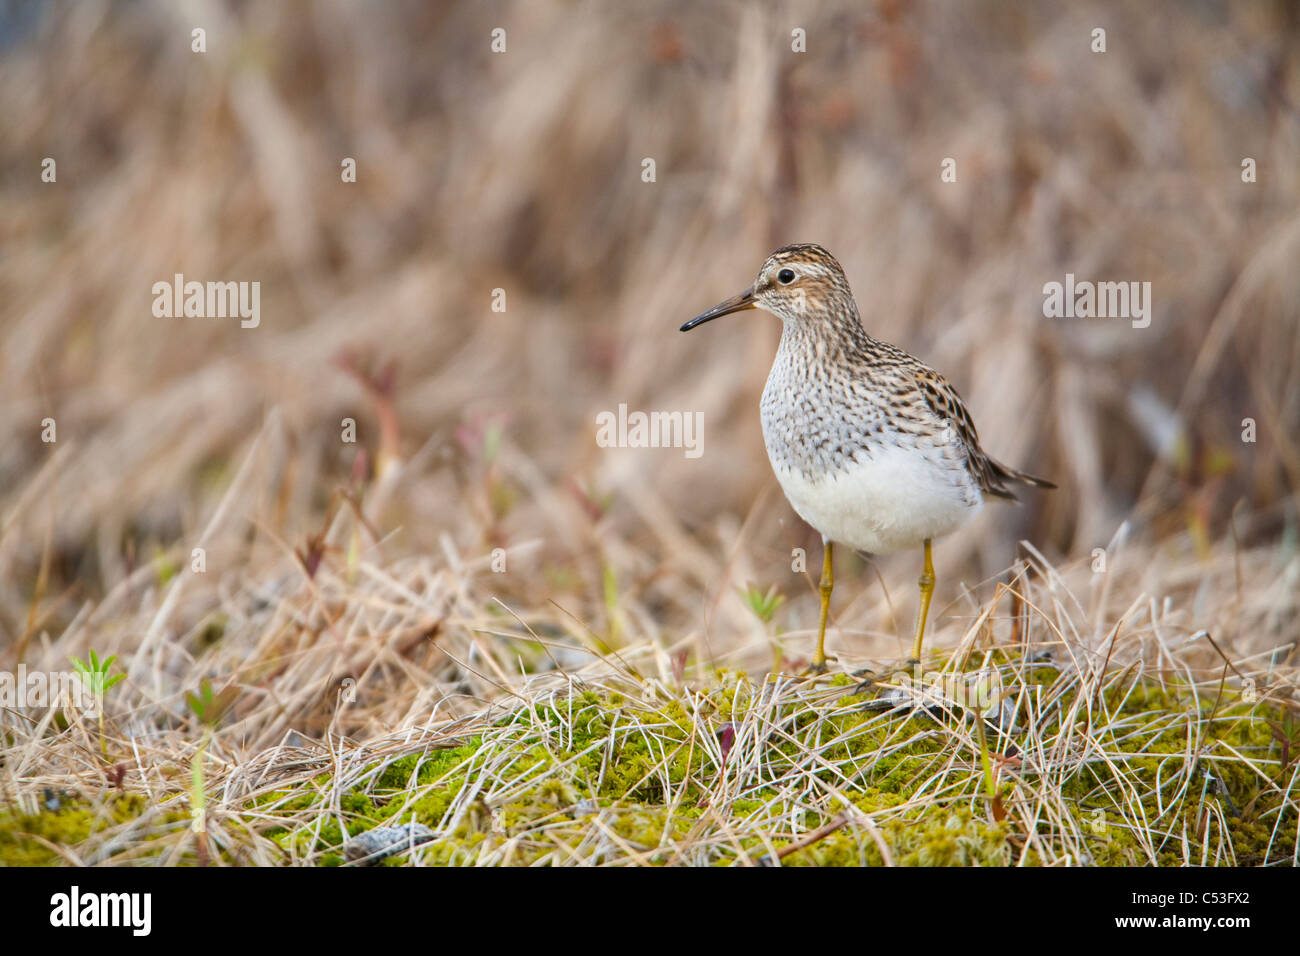 Pectoral Sandpiper on Copper River Delta during Spring migration, near Cordova, Southcentral Alaska, Spring - Stock Image